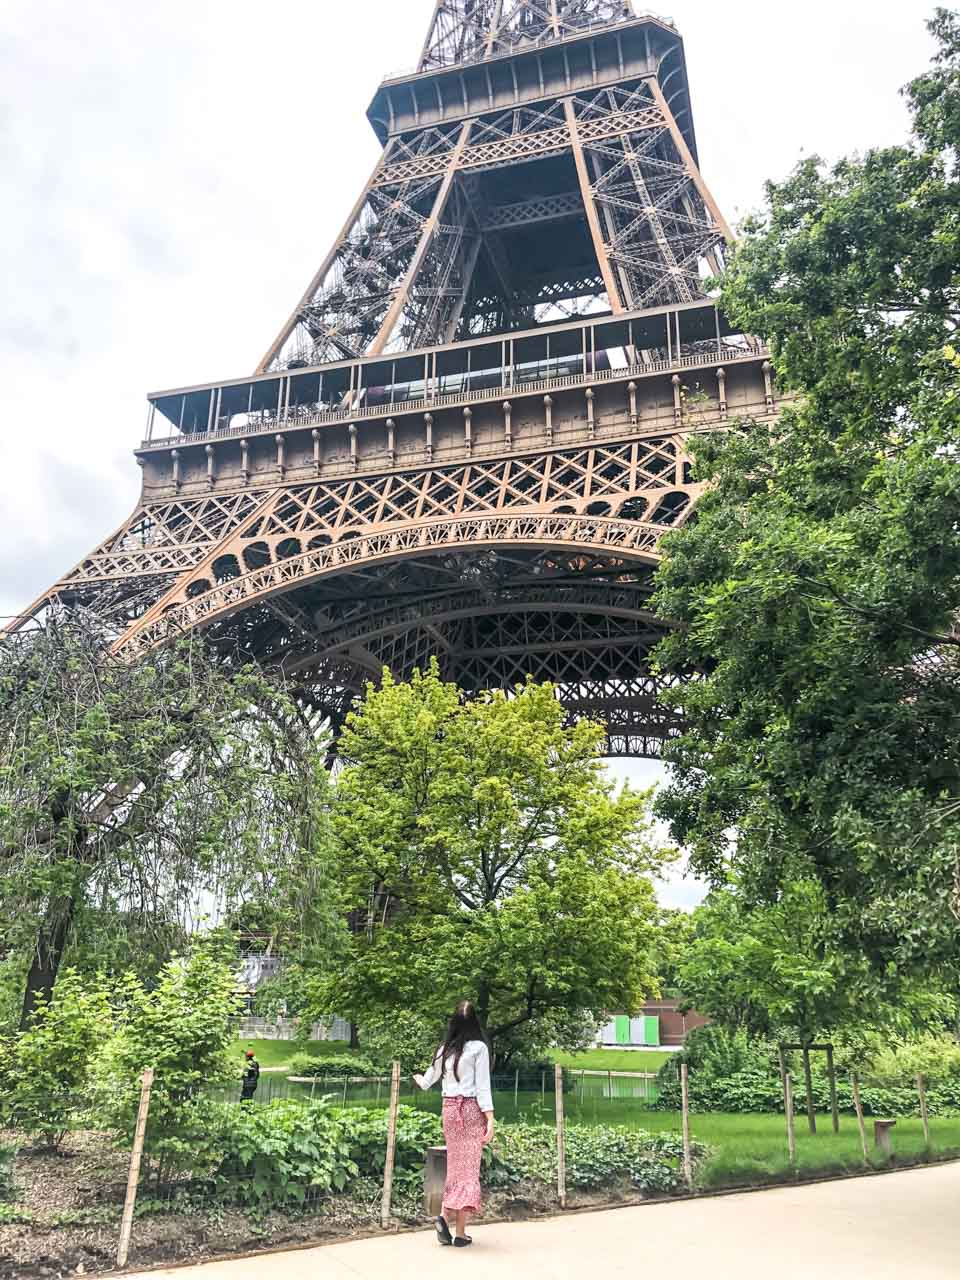 A dark-haired woman in a light denim jacket, a white and red floral midi dress and black ballet flats with her back turned to the camera looking up at the Eiffel Tower in Paris, France as she is standing in the surrounding park